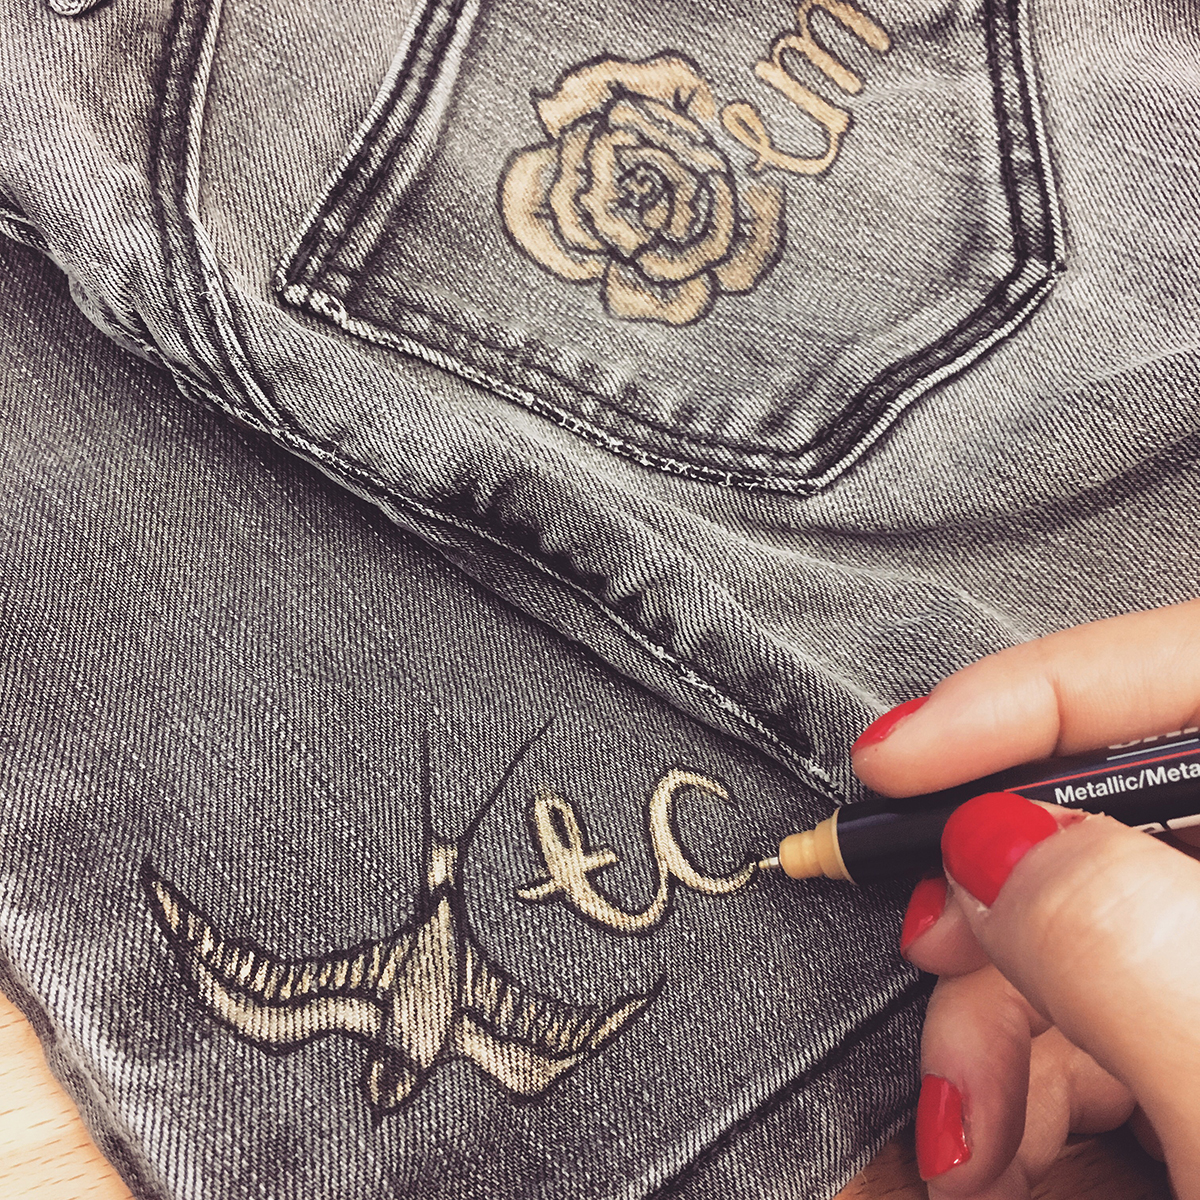 customising jeans